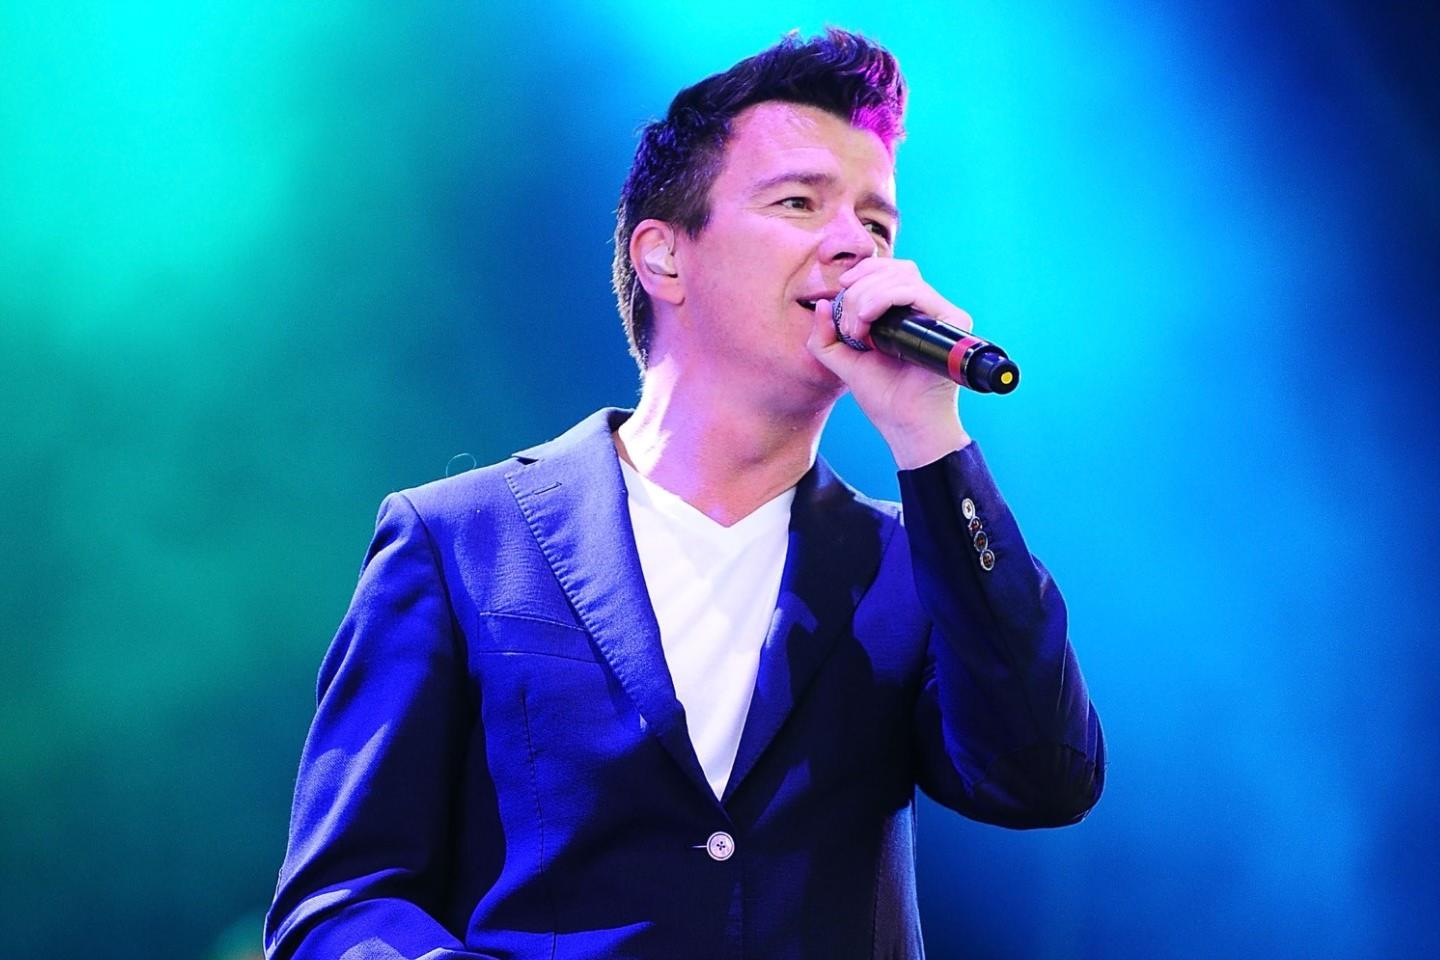 Rick Astley Tour 2020 Rick Astley Tickets | Rick Astley Tour Dates 2020 and Concert